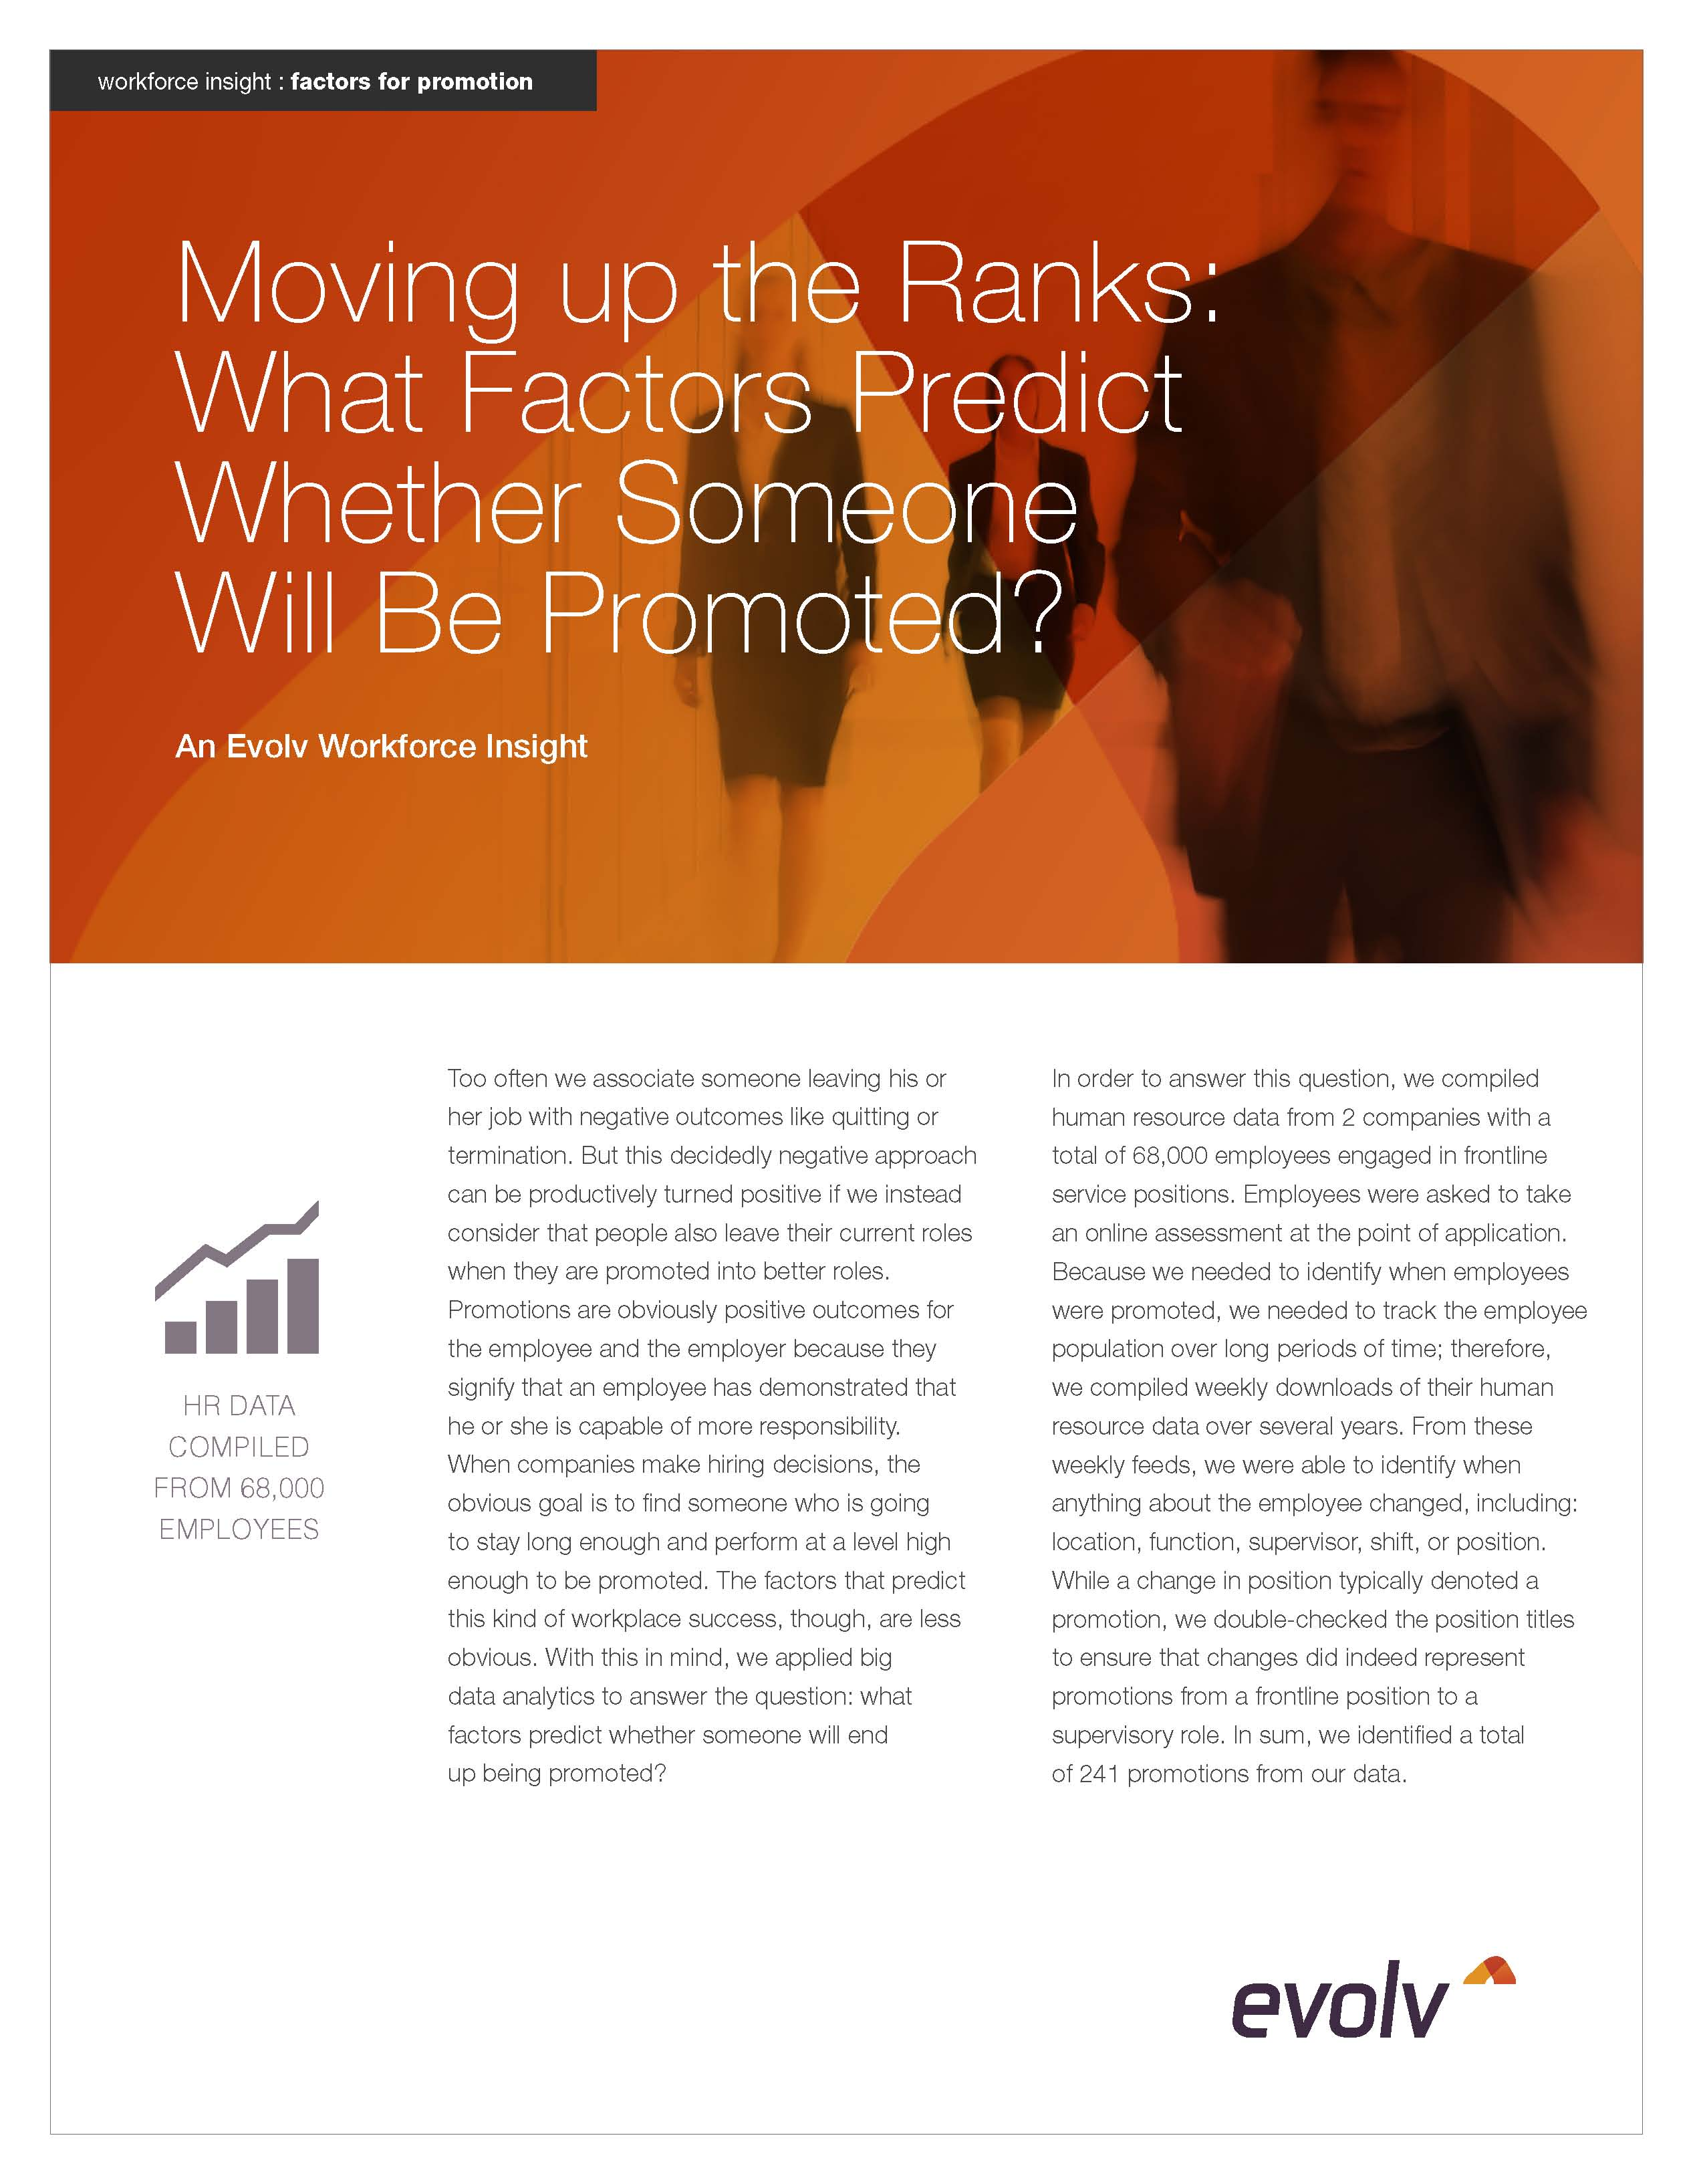 Moving up the Ranks: What Factors Predict Whether Someone Will Be Promoted?